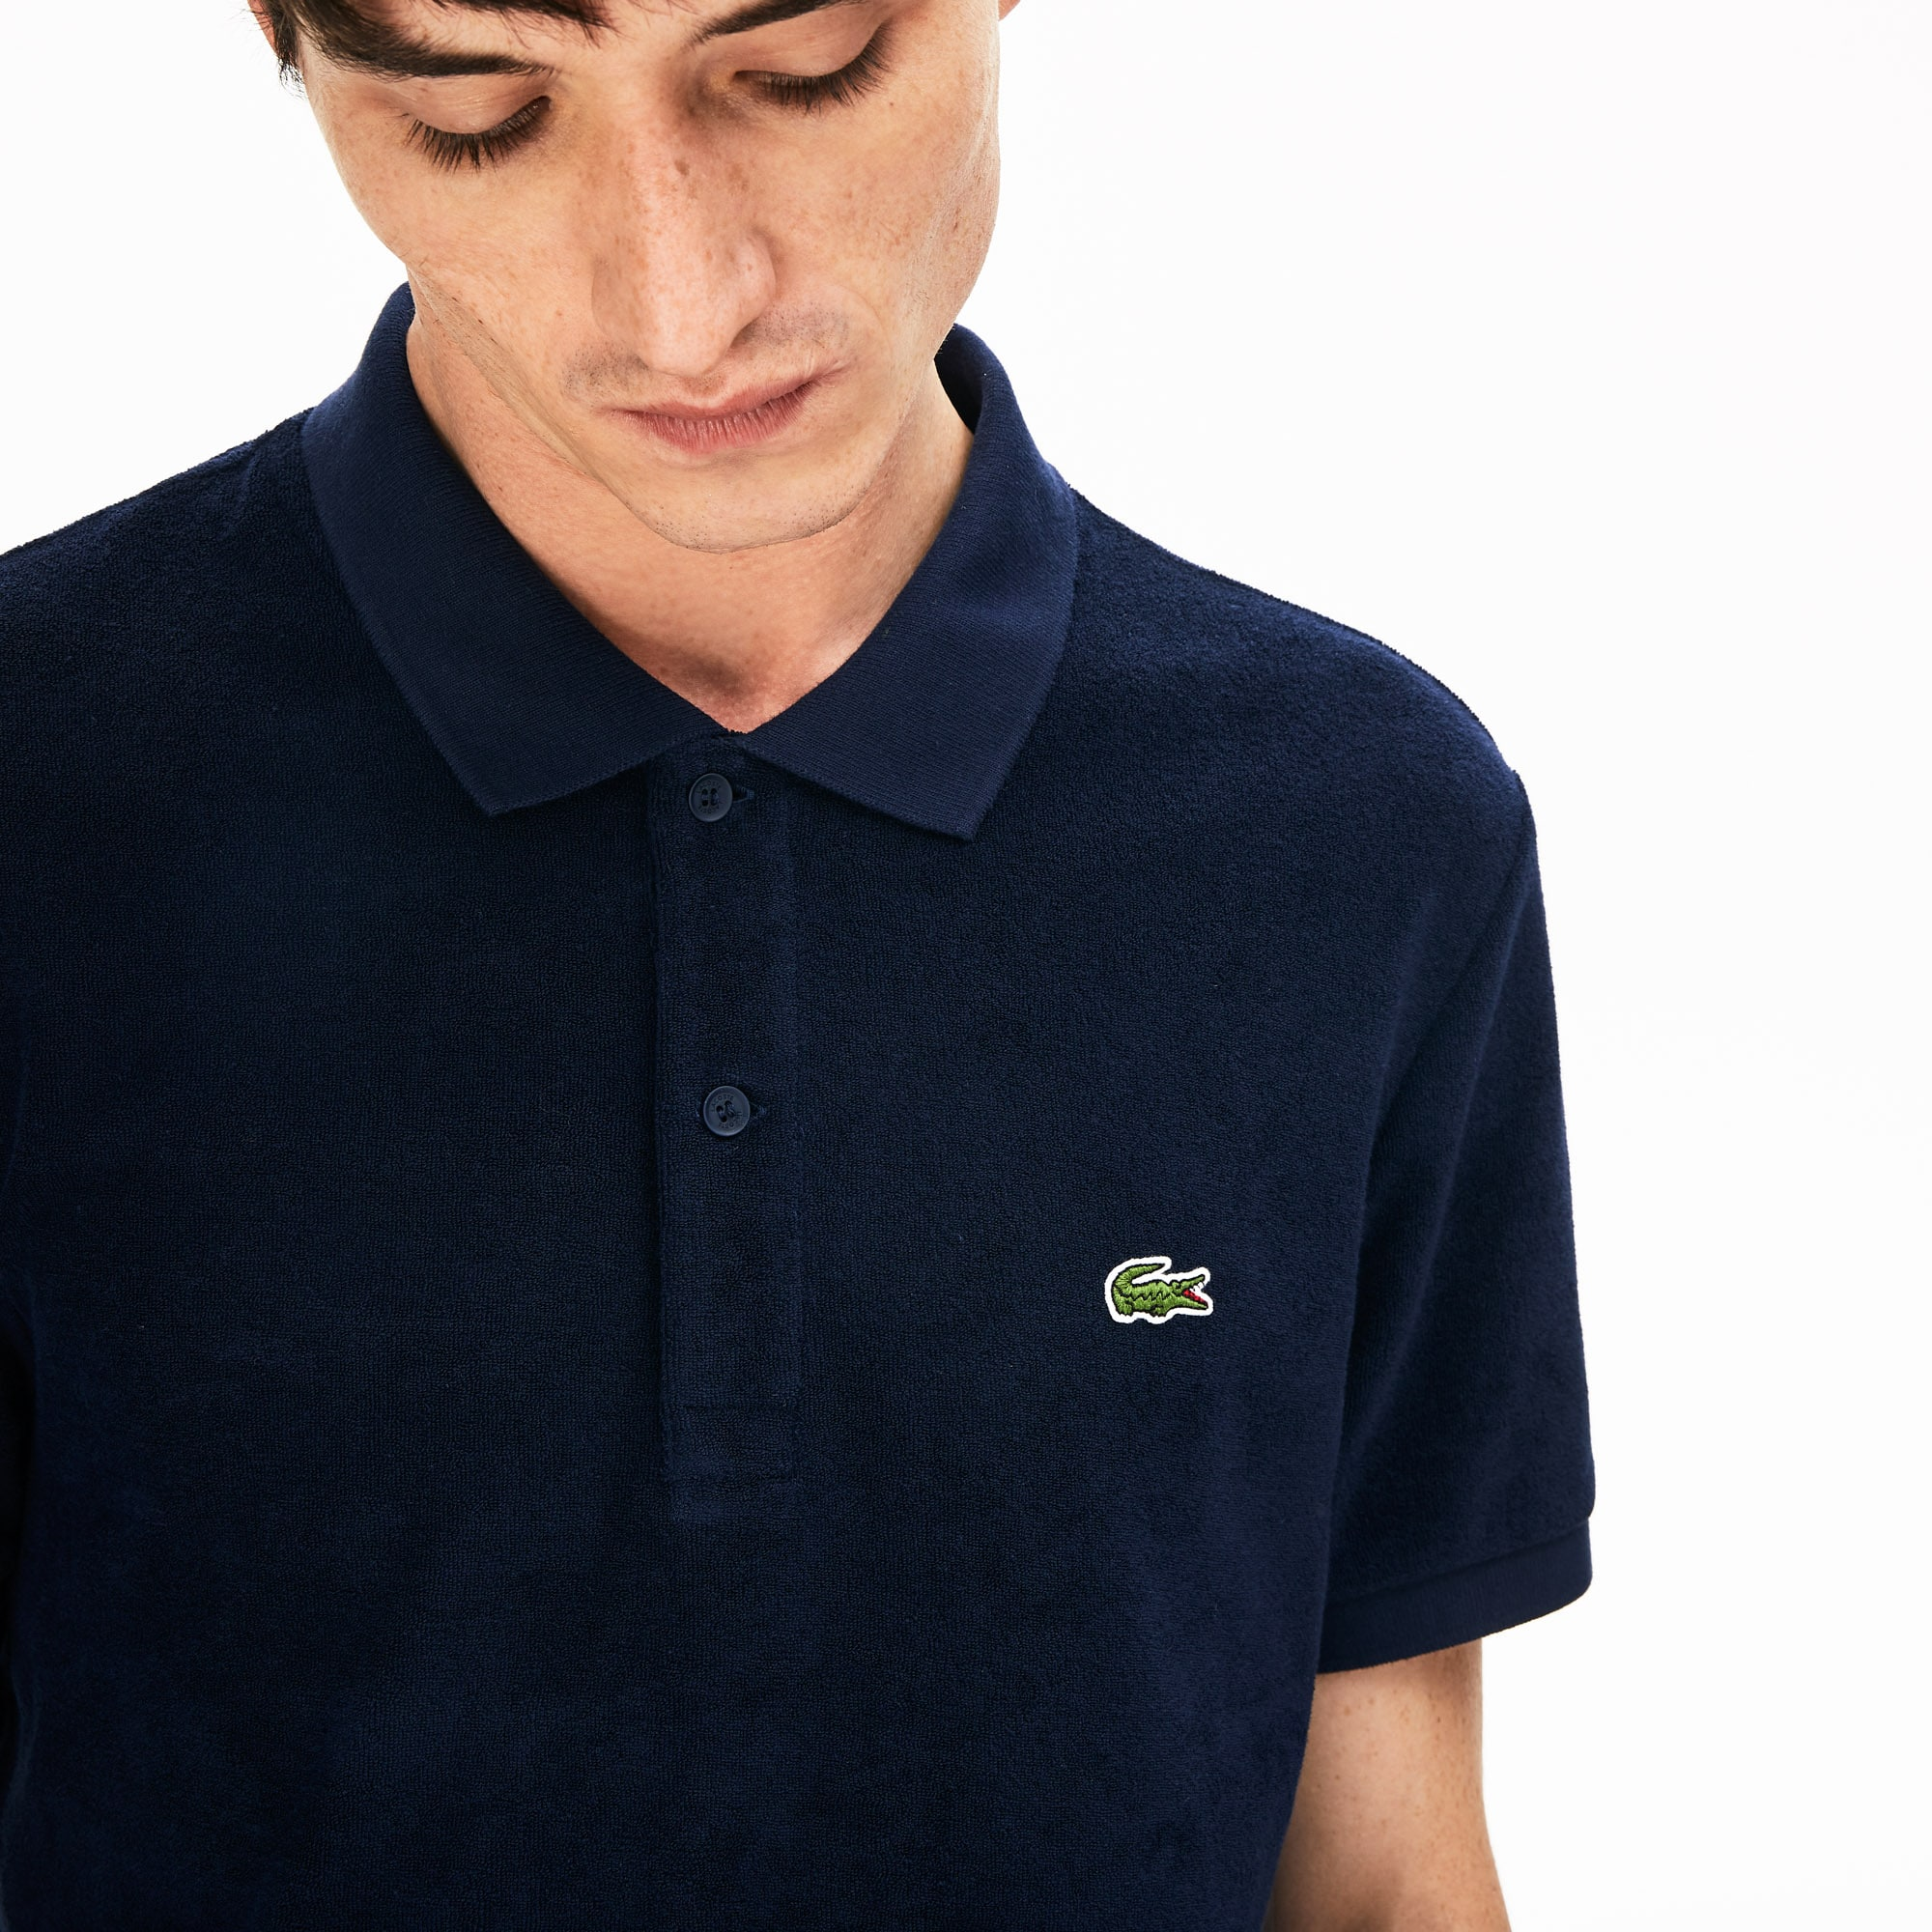 Lacoste polo heren katoenfleece regular fit